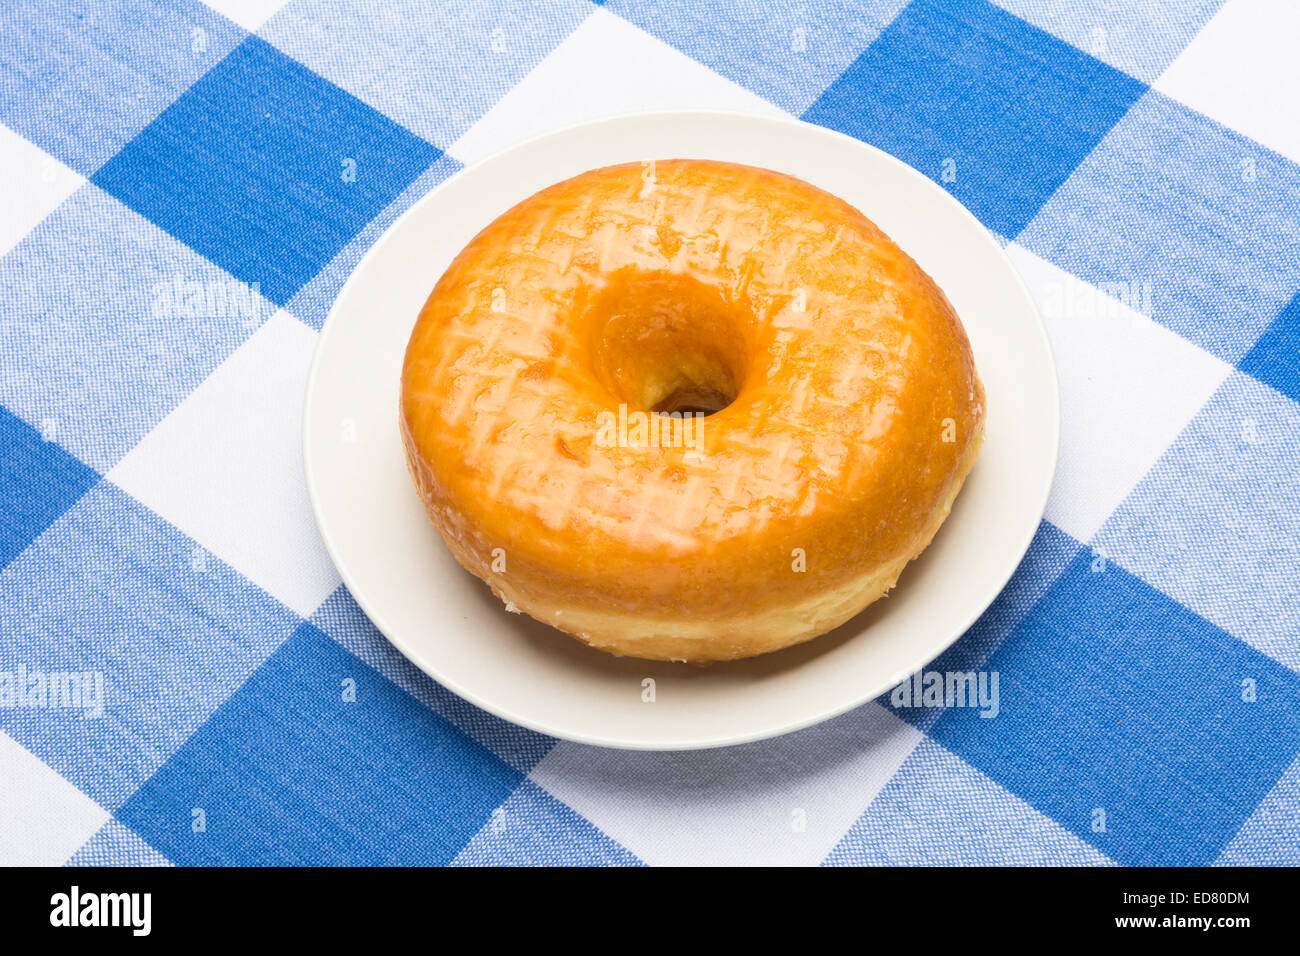 A fresh, delicious glazed donut on a classic, checkered diner tablecloth - Stock Image